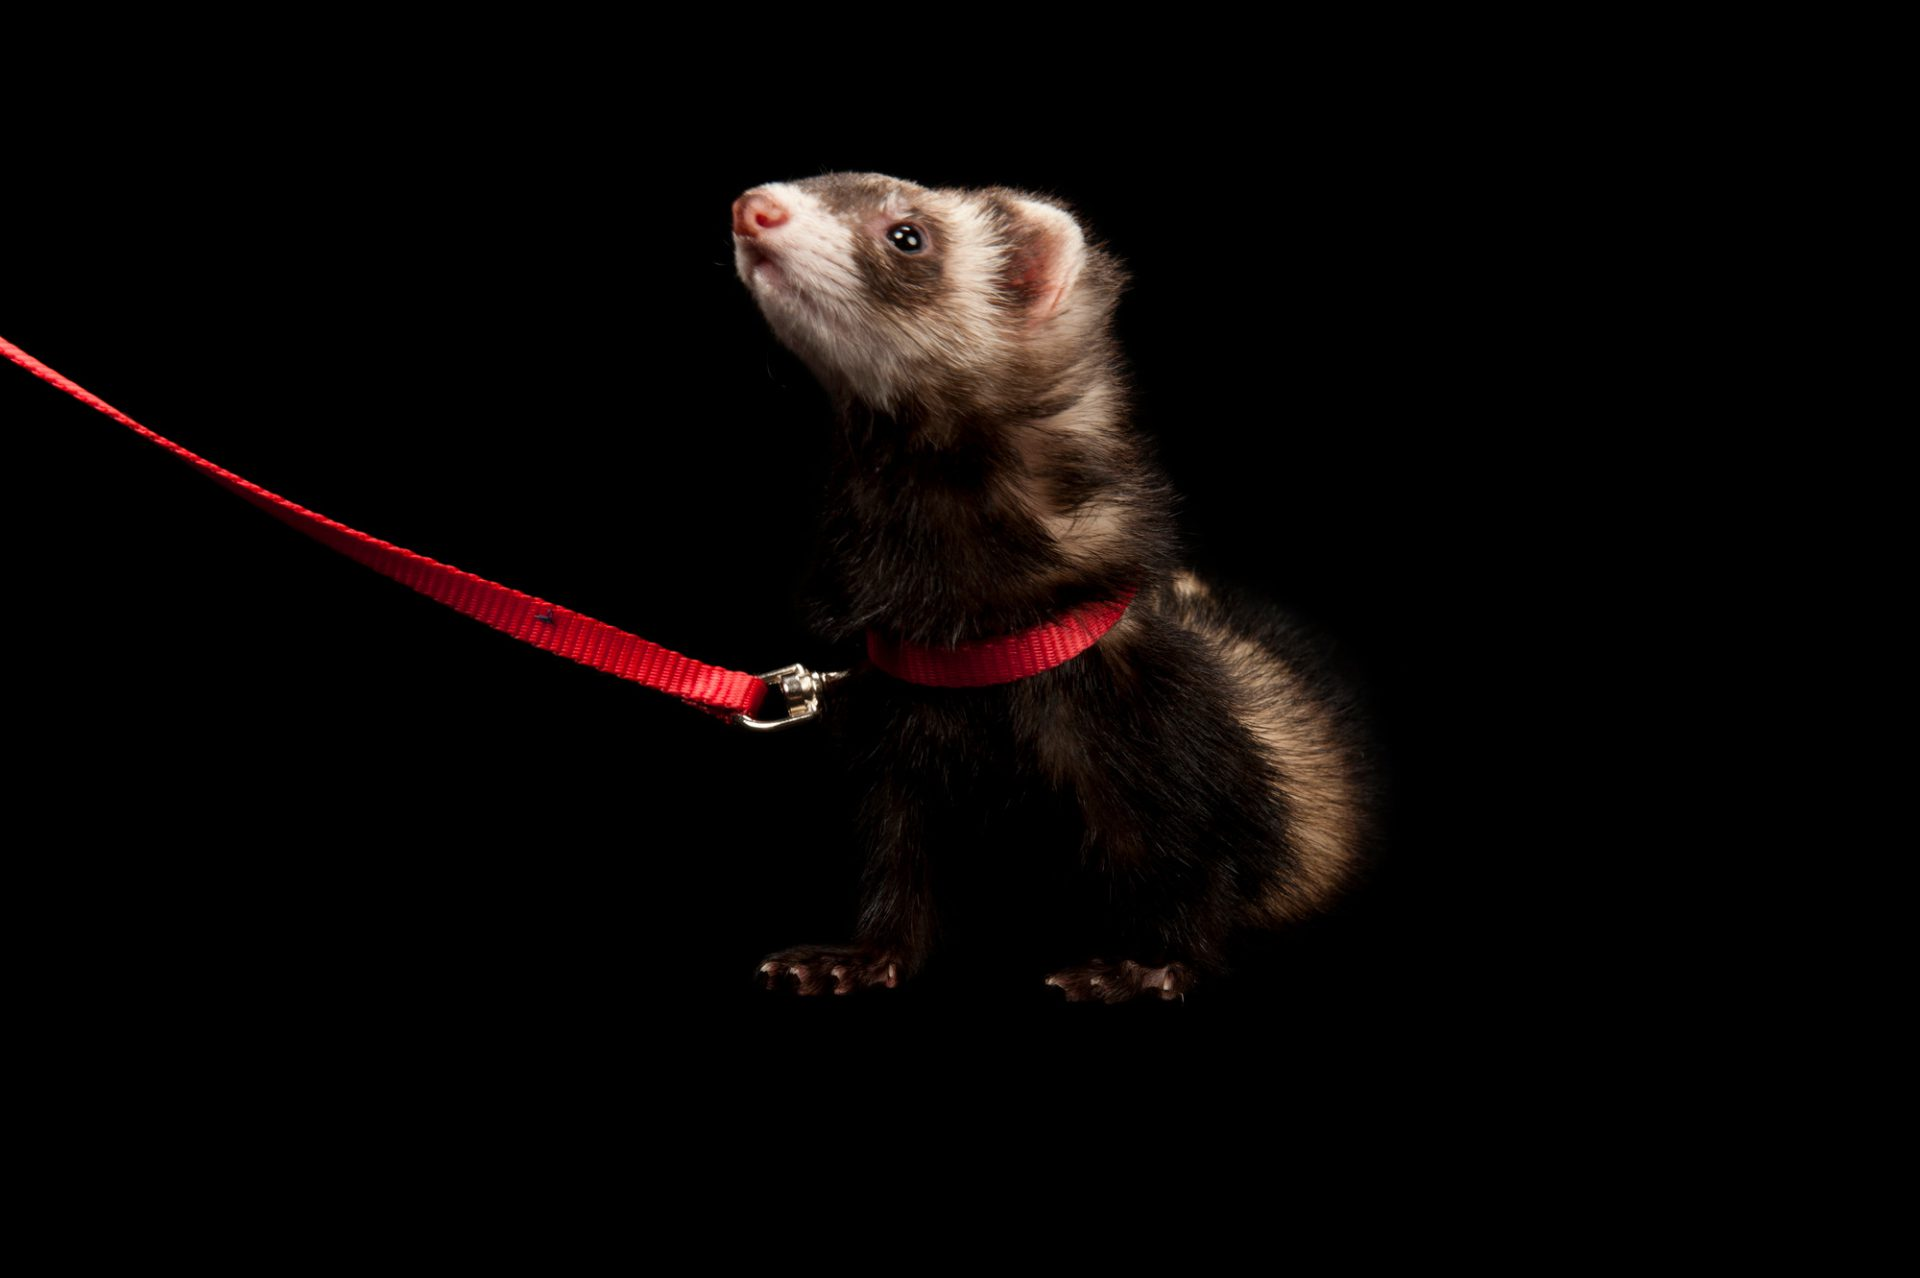 Mary, a domestic ferret (Mustela putorius furo), at the Capital Humane Society.